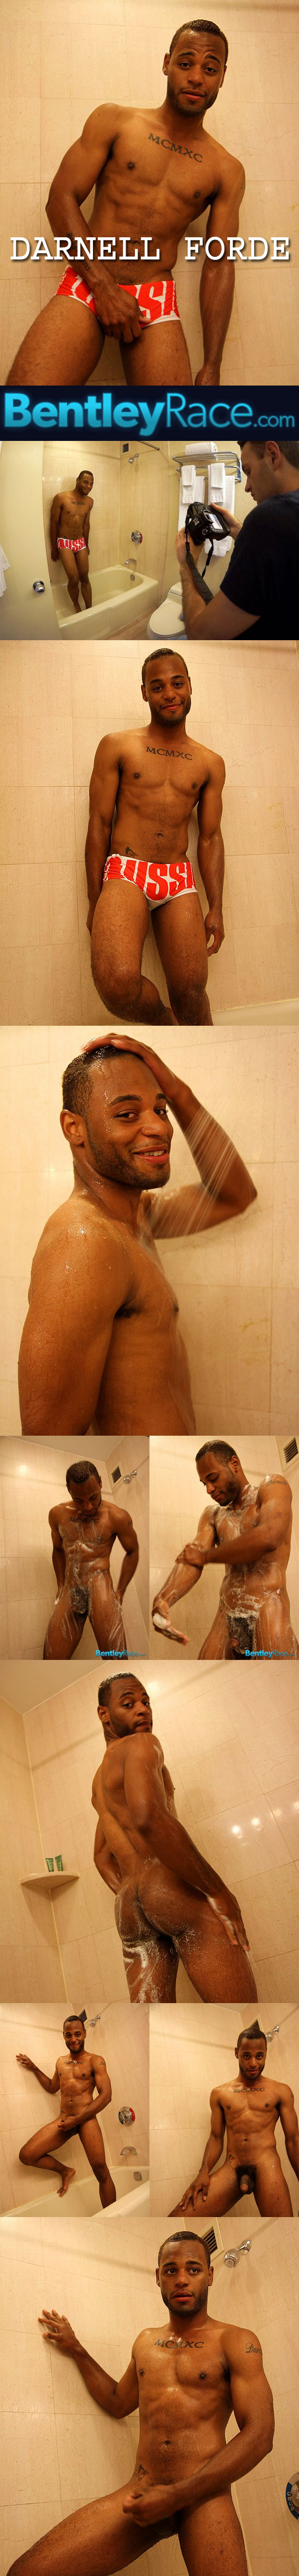 Darnell Forde jerks off in the shower